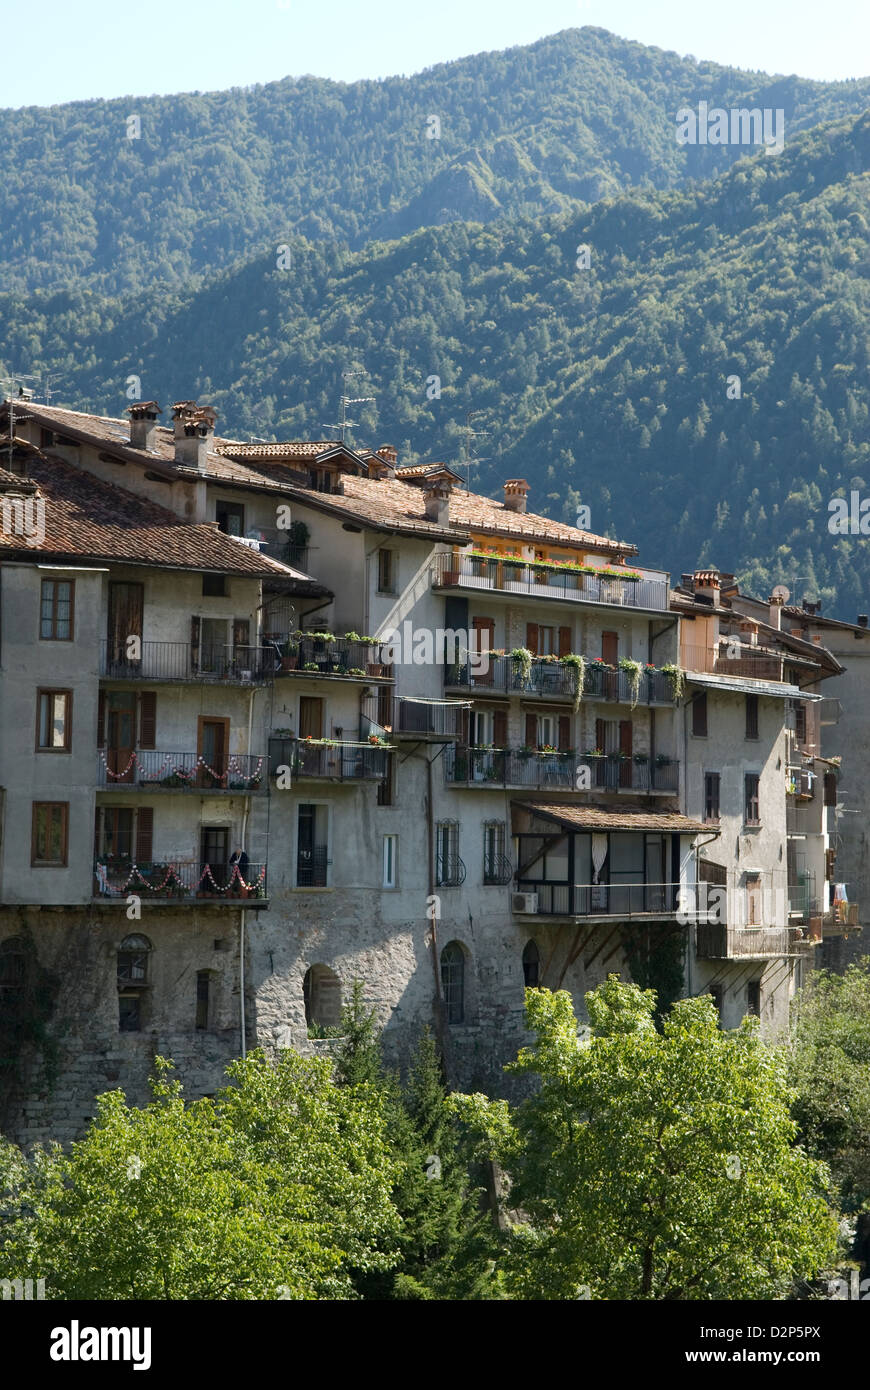 Bagolino Lombardy Italy travel tourism - Stock Image